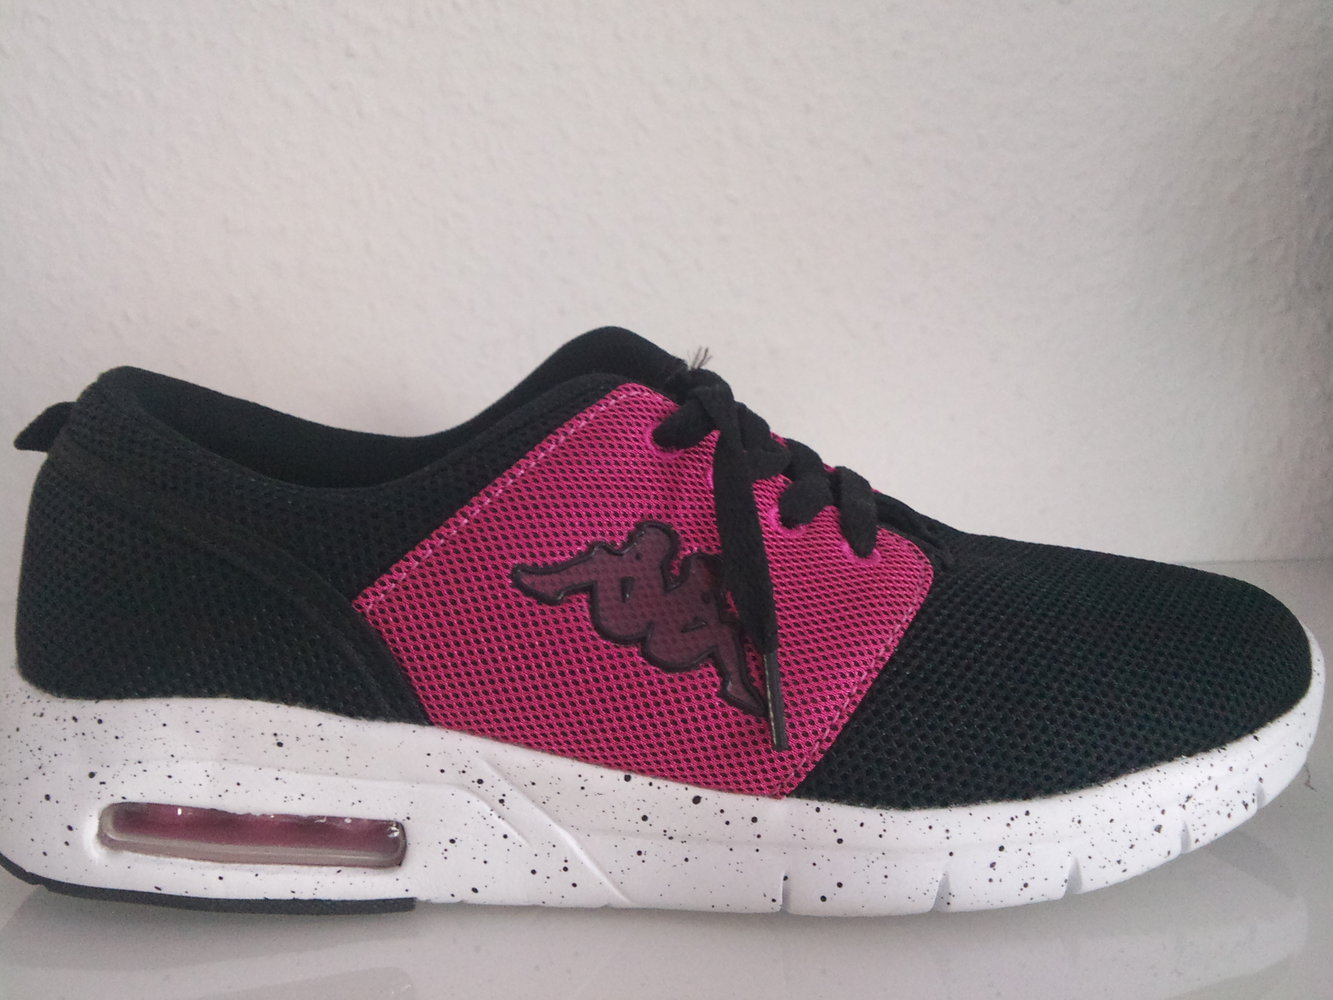 newest collection 25175 222c8 Kappa Schuhe Sneaker